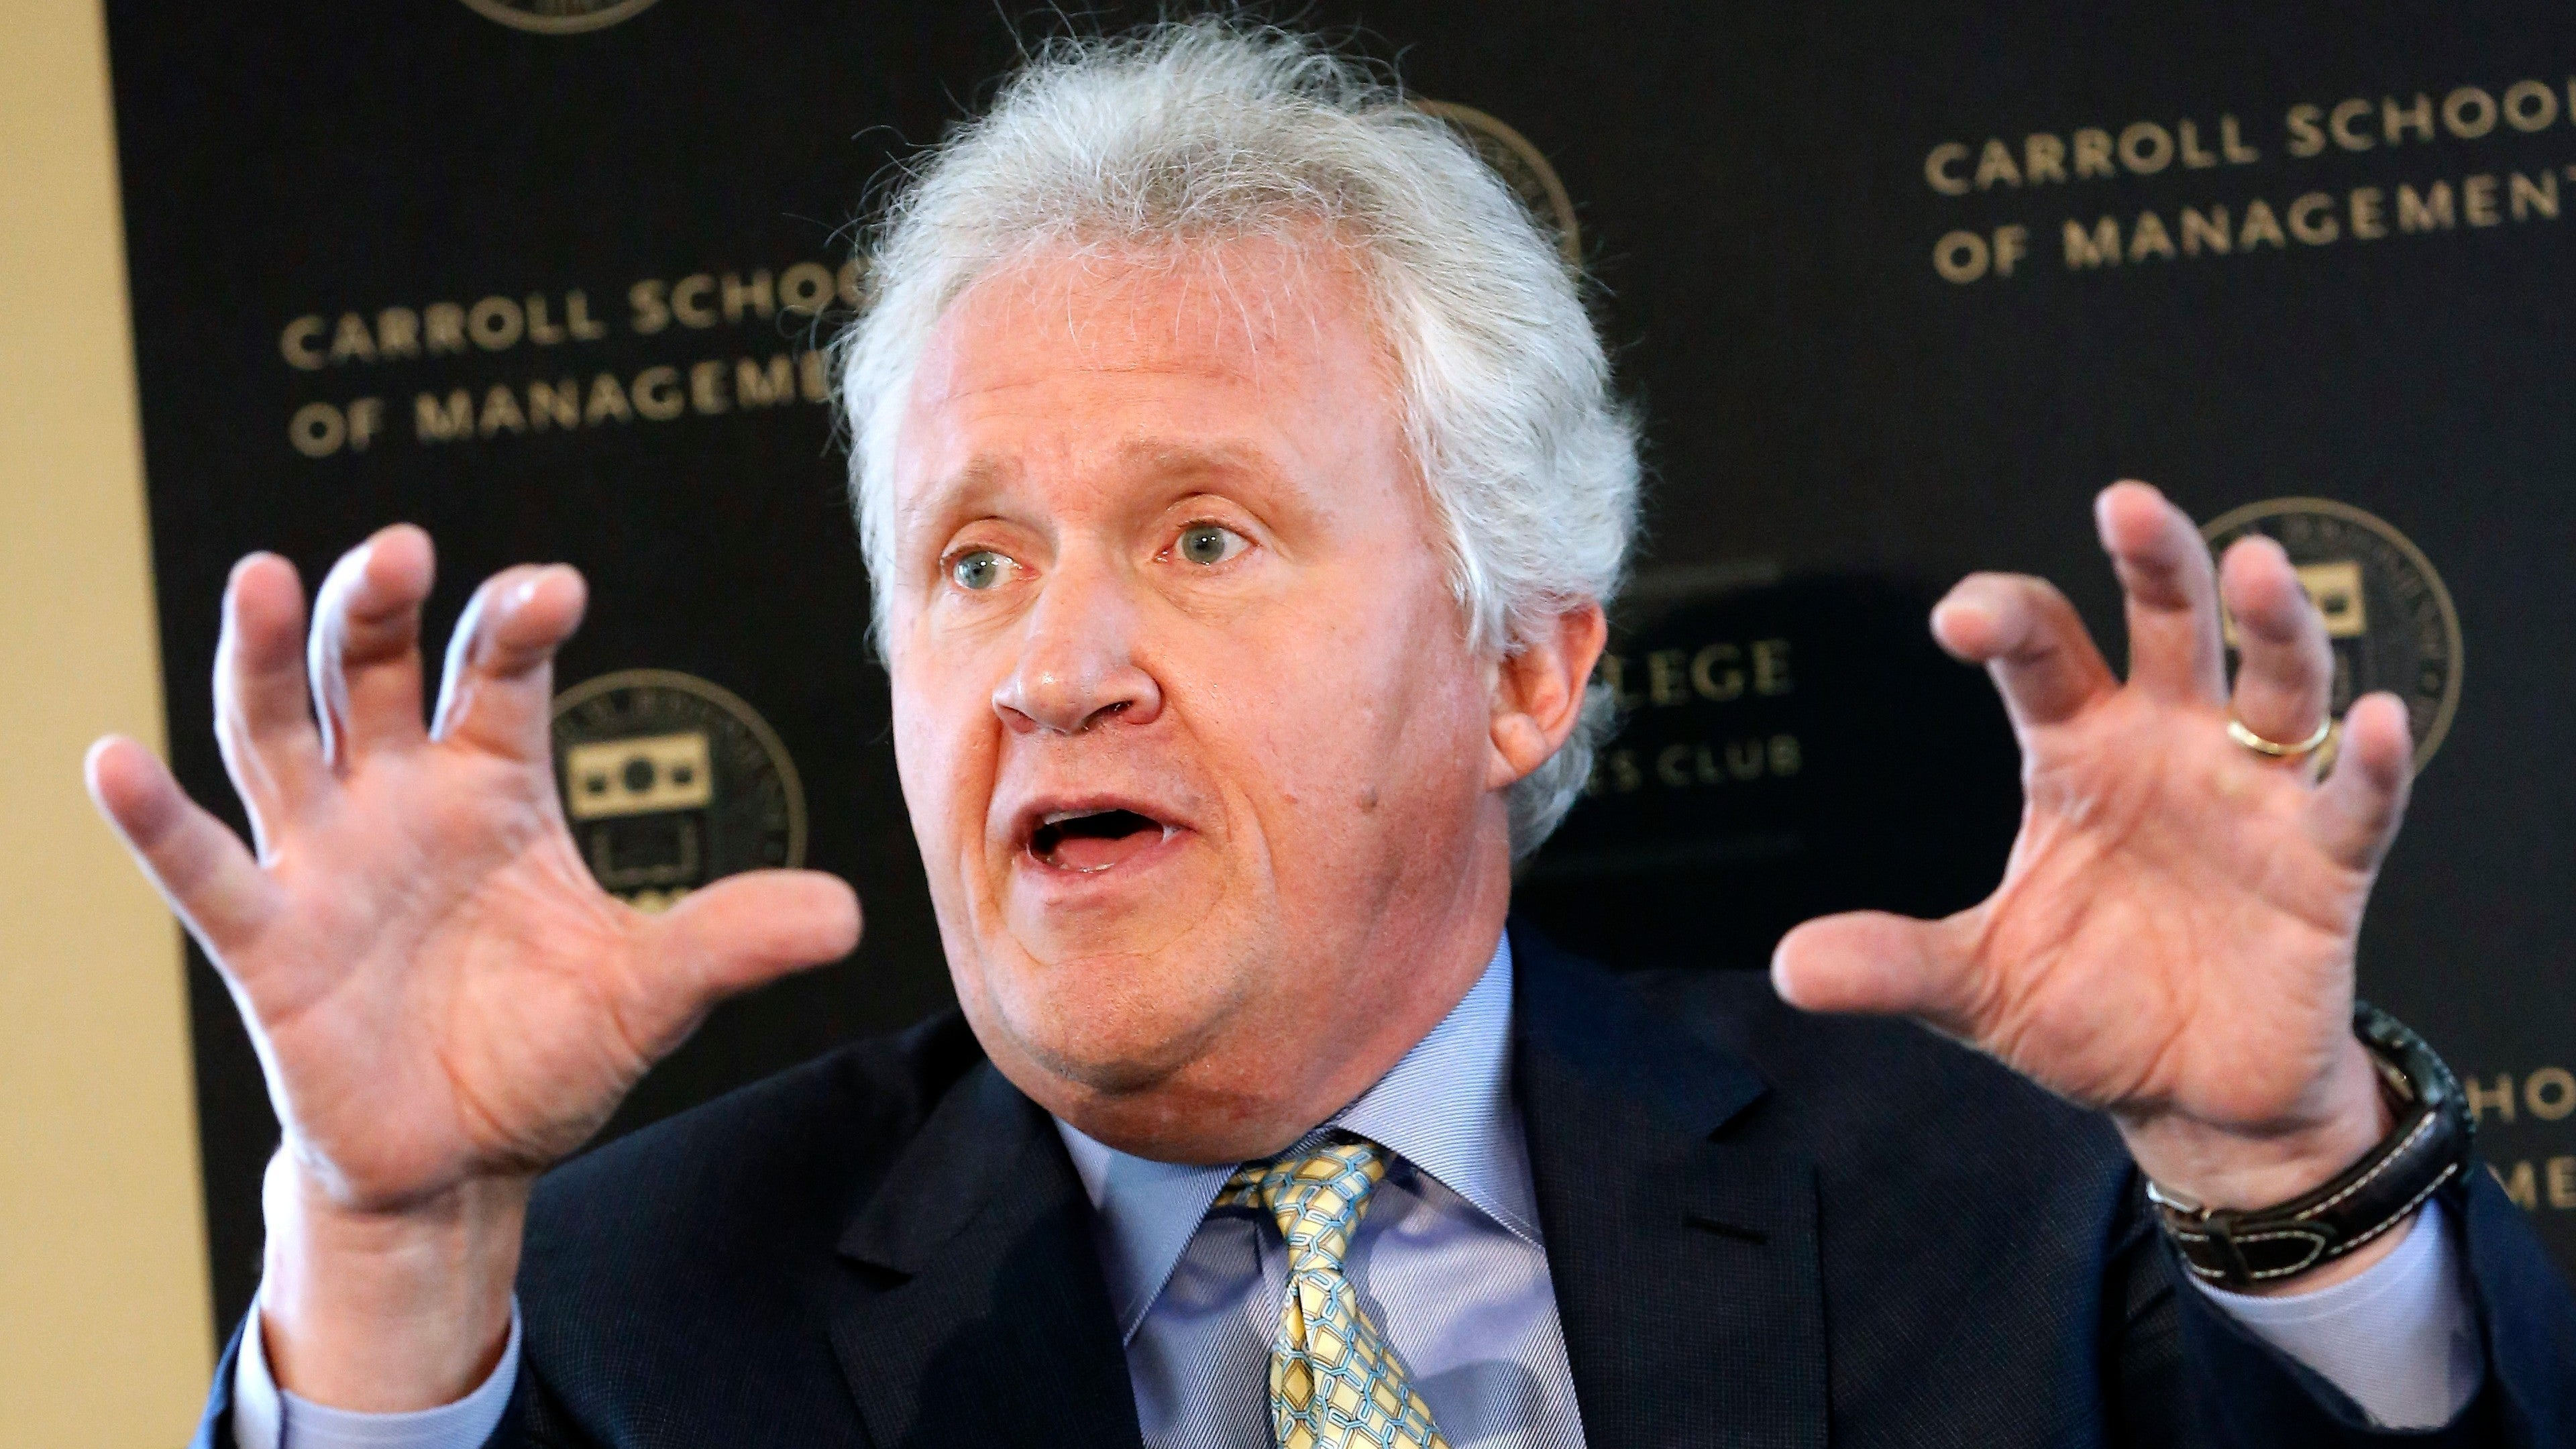 Report: Uber's New CEO Will Likely Be General Electric's Jeffrey Immelt